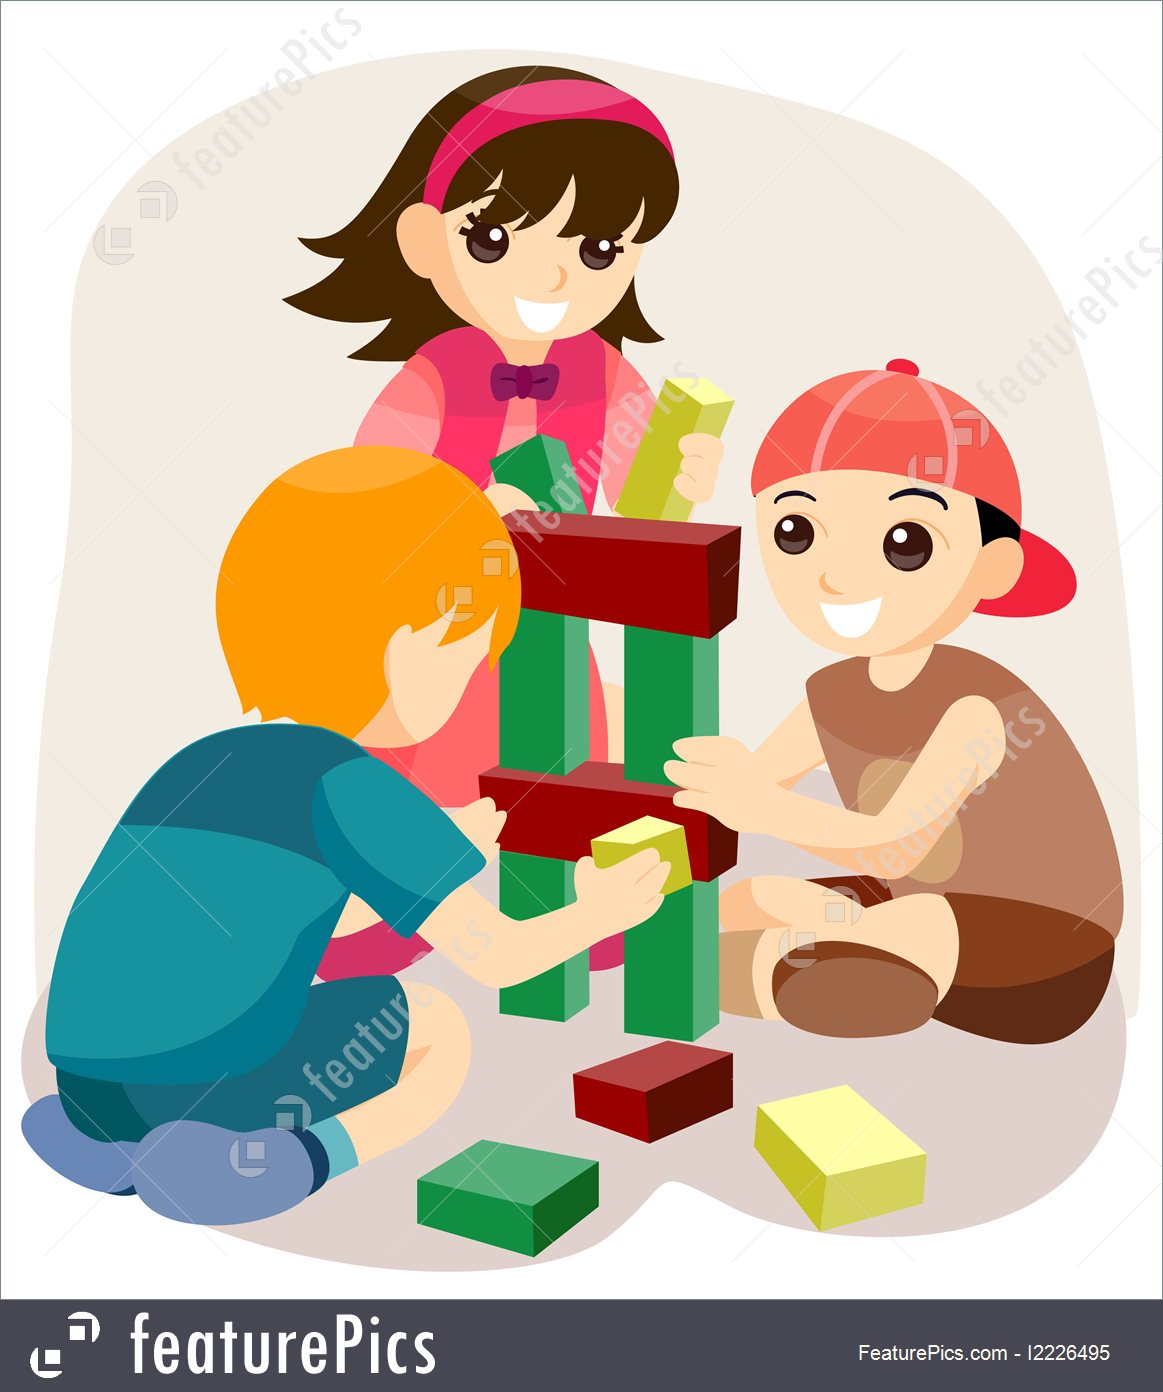 Child building with blocks clipart png black and white Toys And Souvenirs: Building Blocks - Stock Illustration I2226495 ... png black and white